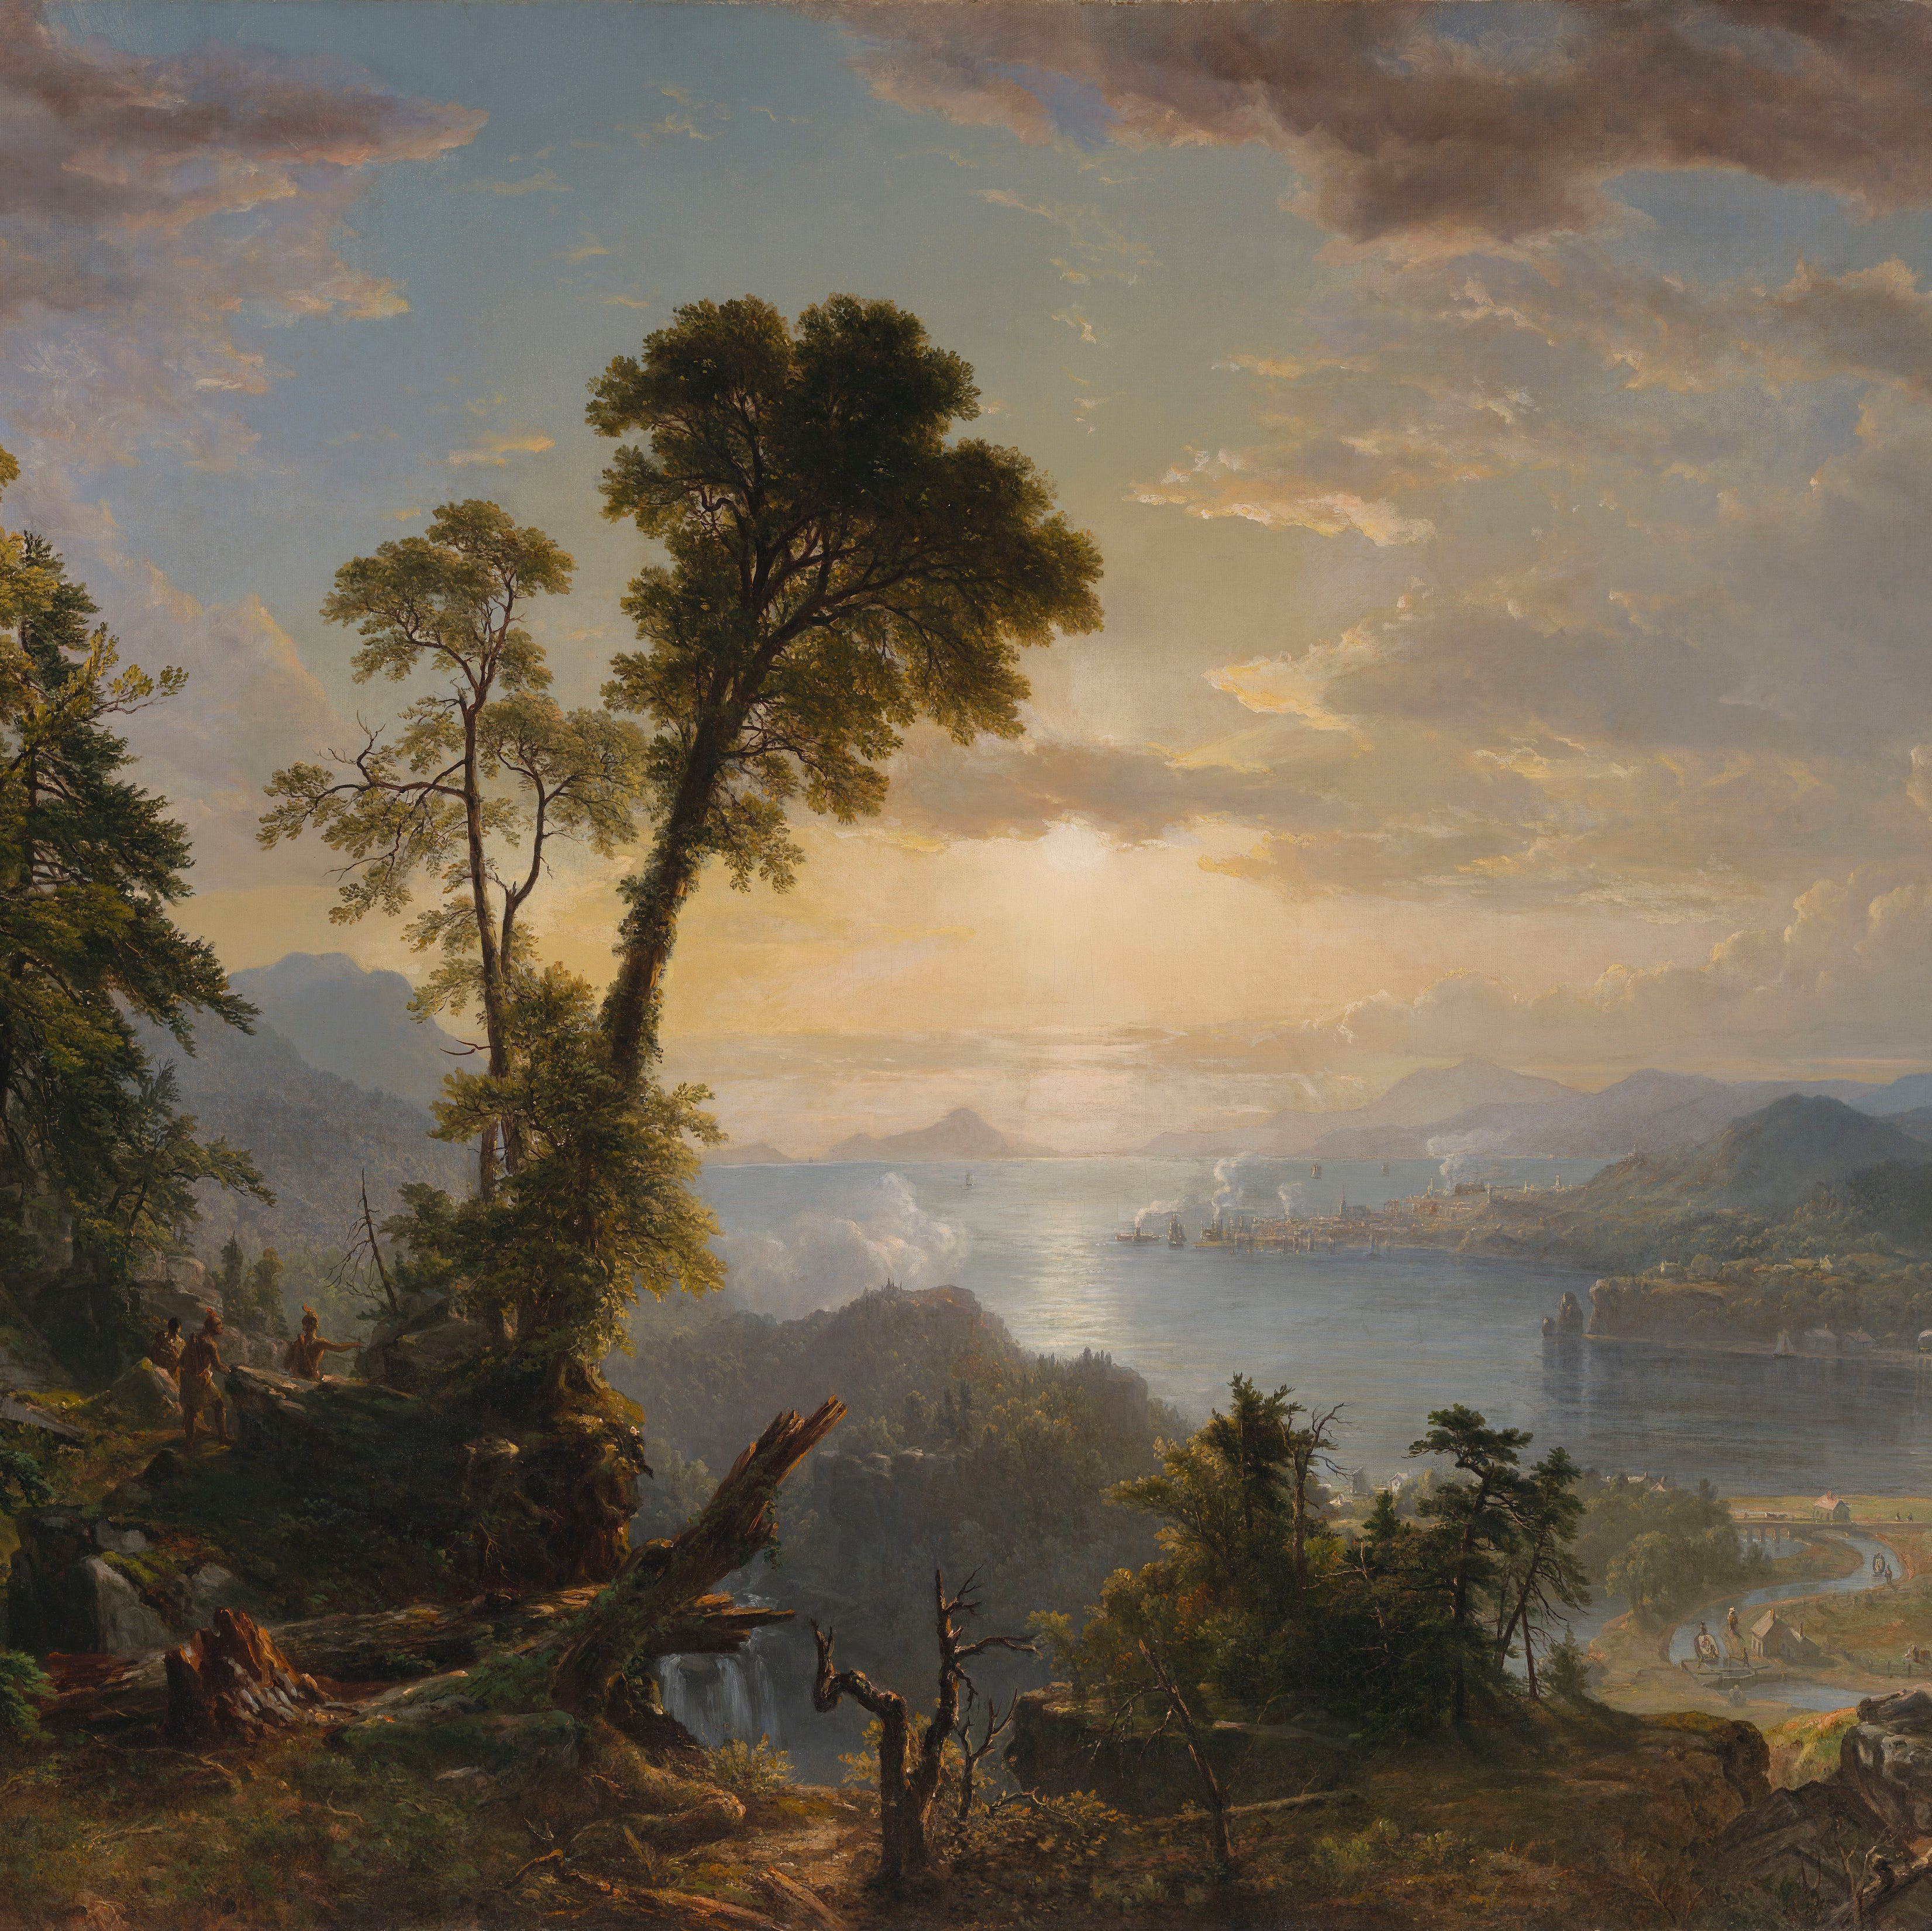 Mystery donor gives Virginia museum painting worth $40M